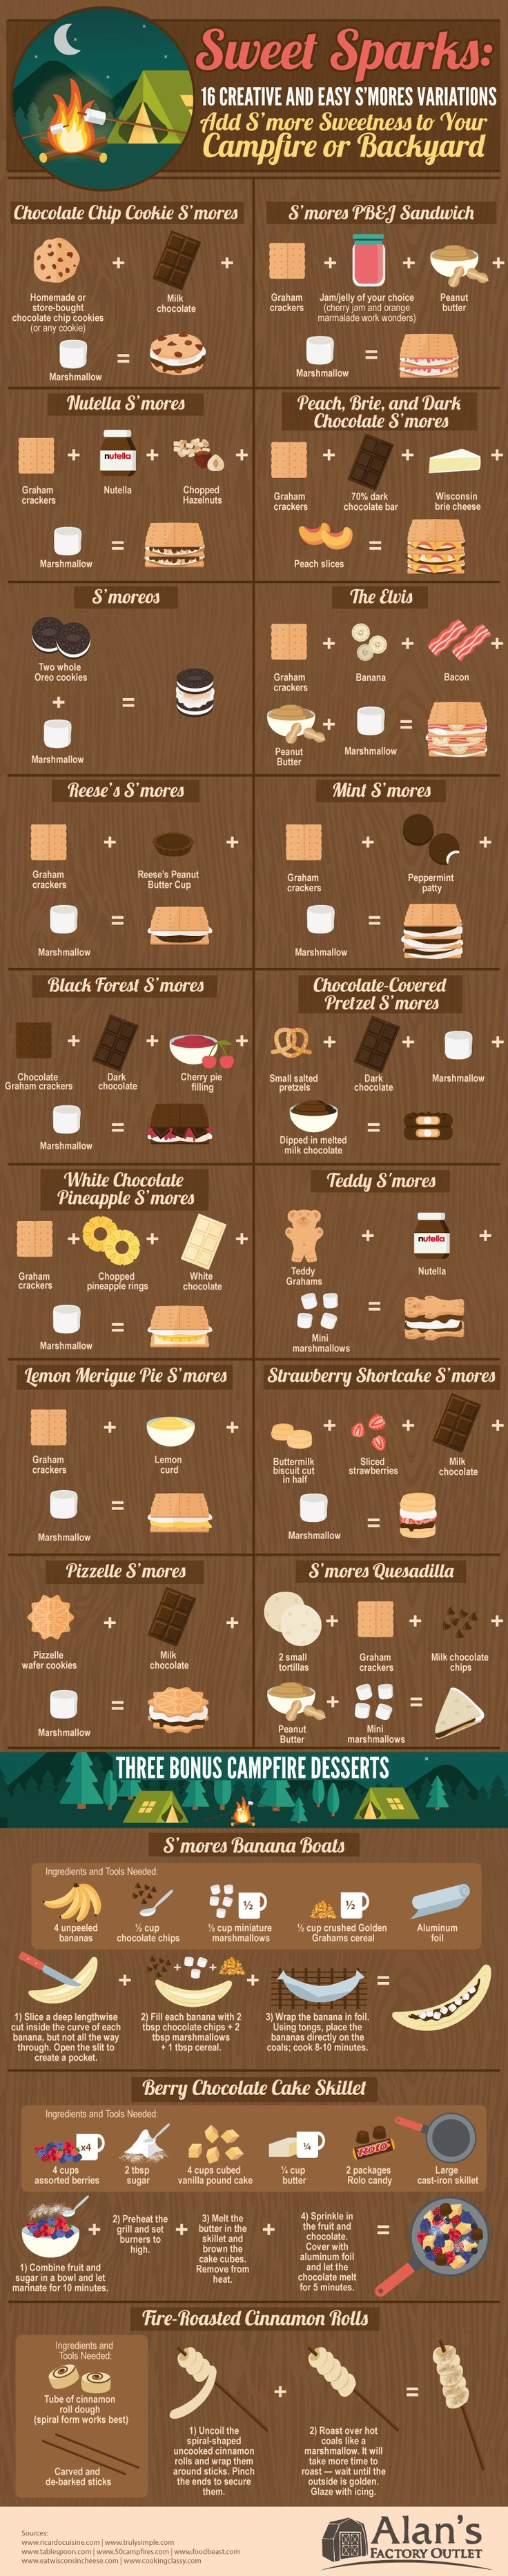 Sweet Sparks: 16 Creative and Easy S'Mores Variations #Infographic #Food http://www.uksportsoutdoors.com/product/minhe-folding-water-carrierportable-outdoor-water-container-for-camping-hiking-travelling-activities/